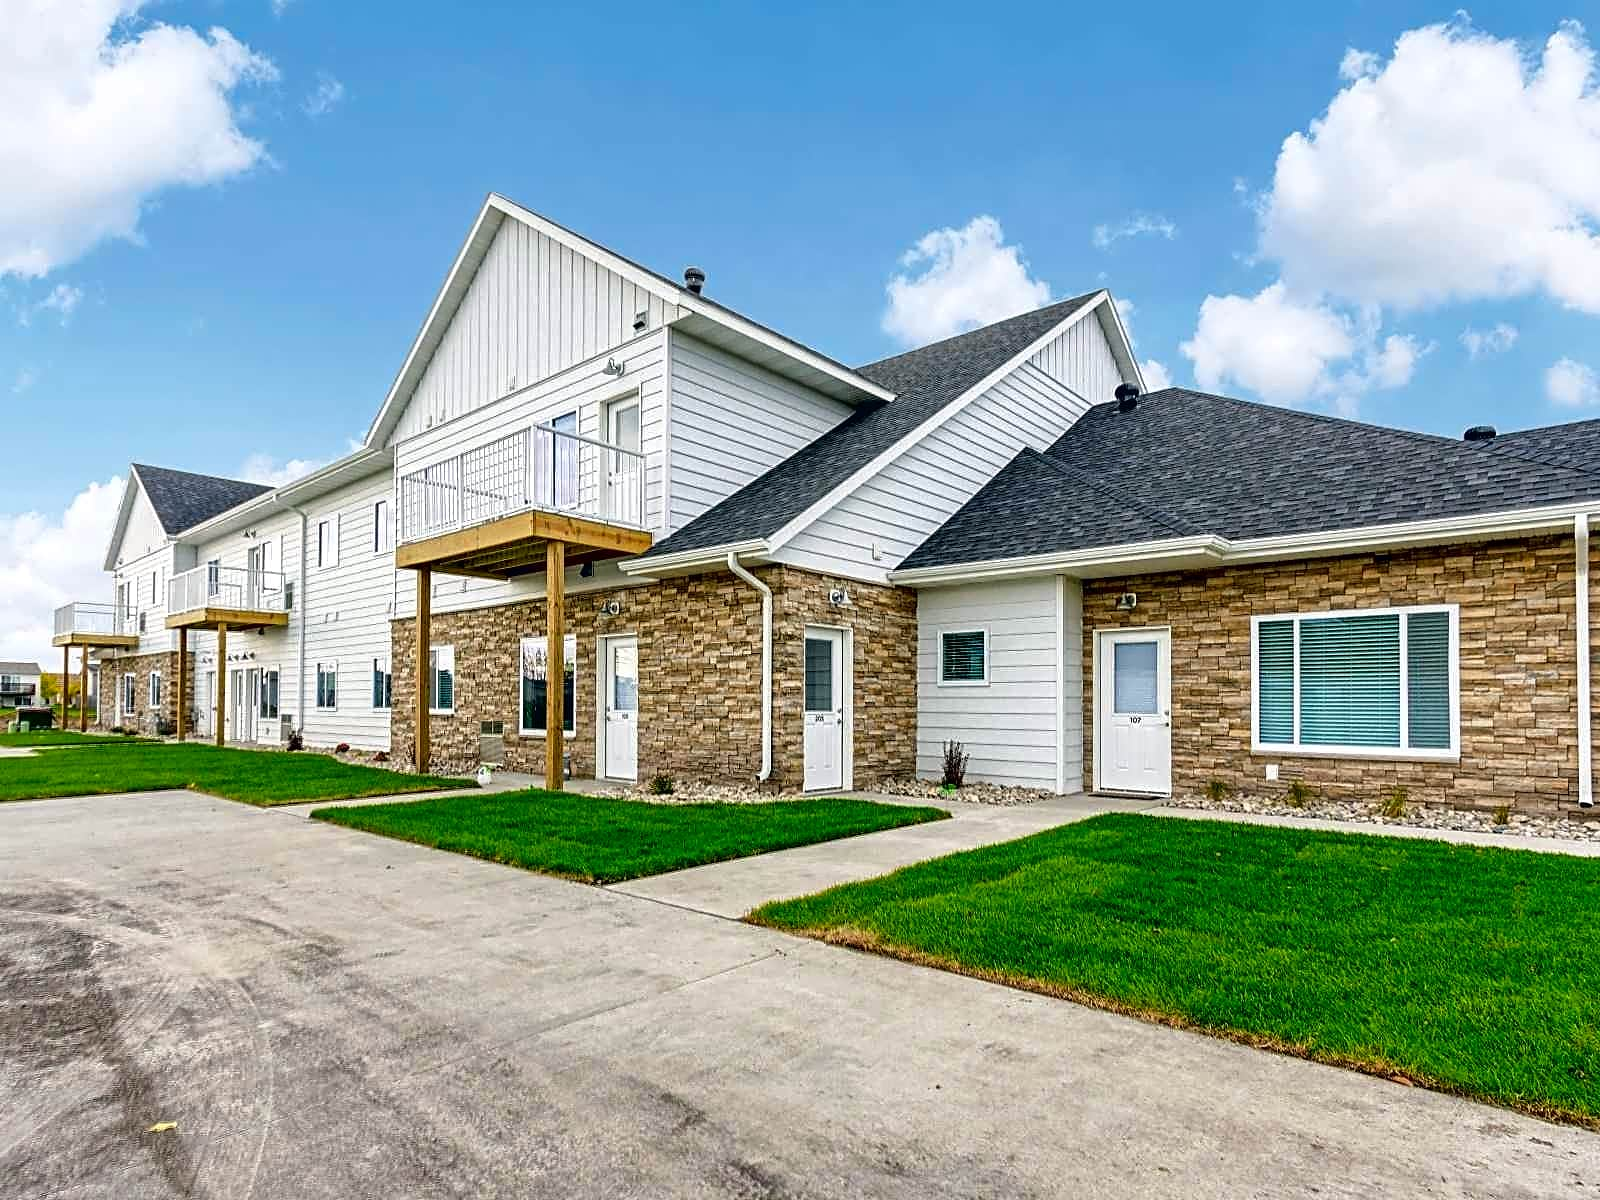 Village Green Apartments & Townhomes